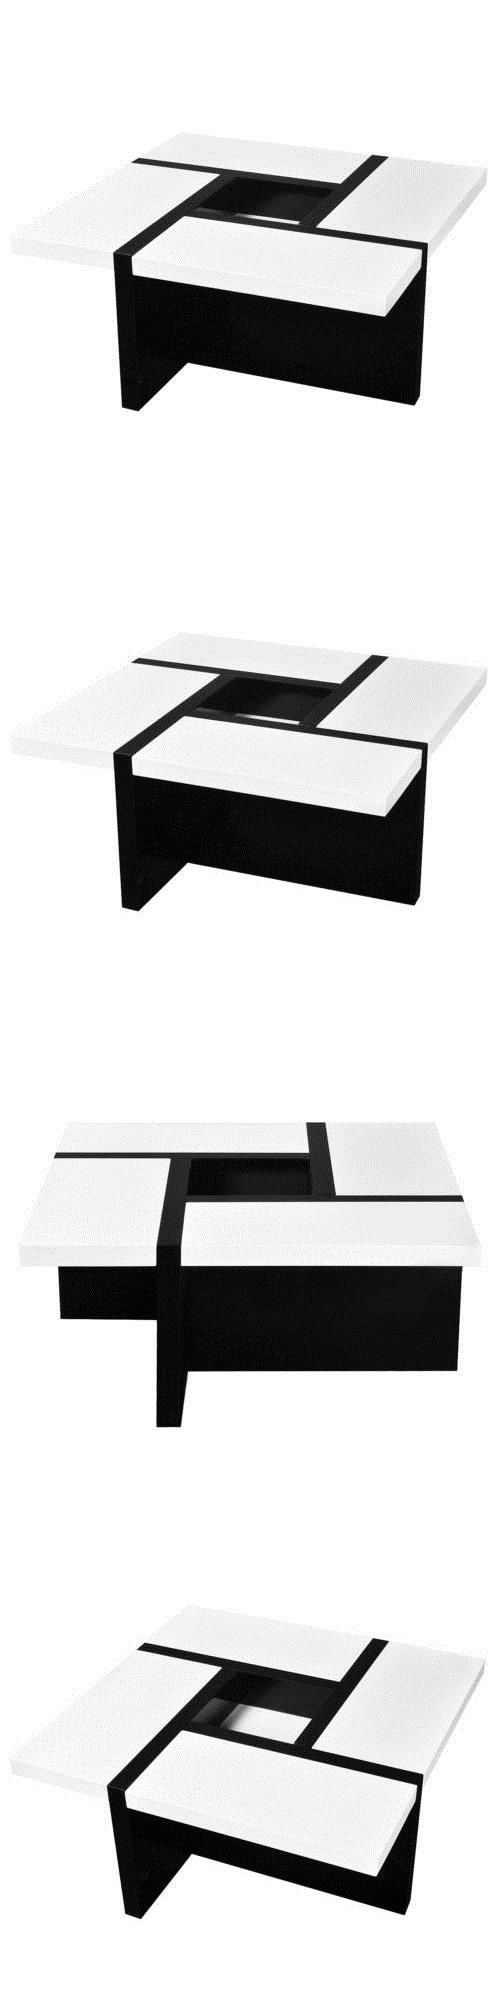 Tables 112590: Vidaxl Coffee Side End Table High Gloss Black And White Living Room Furniture -> BUY IT NOW ONLY: $119.99 on eBay!